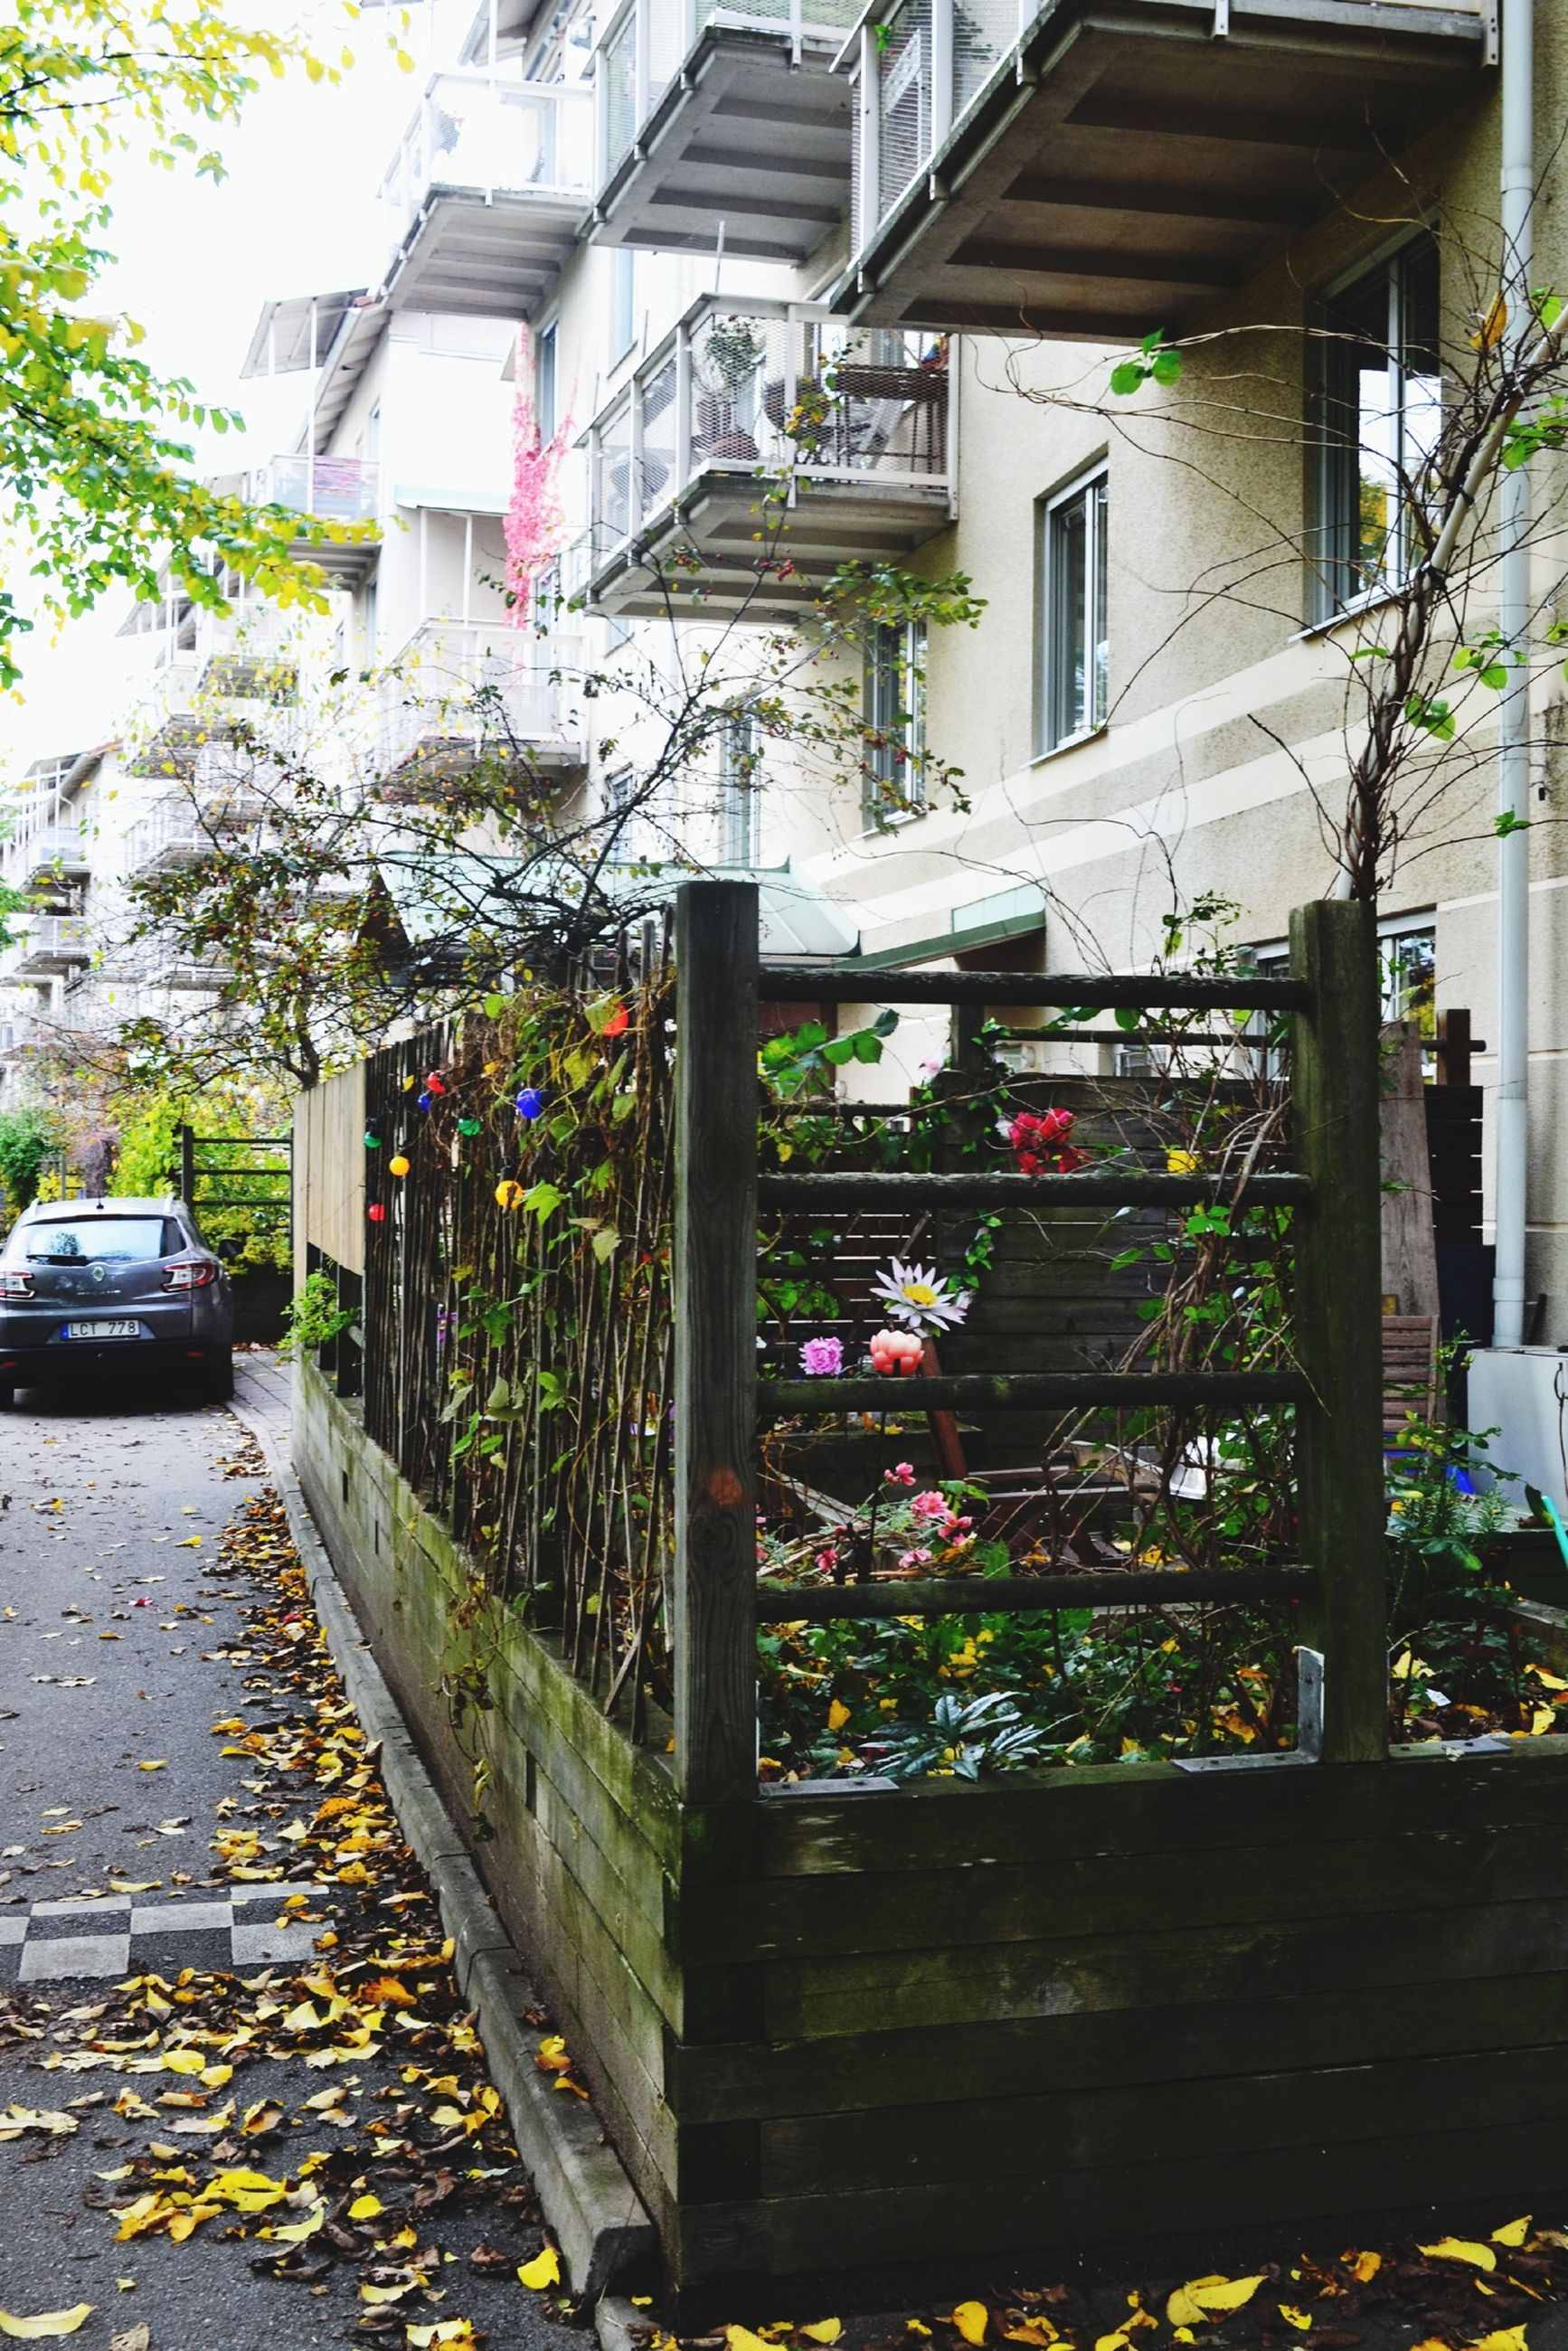 building exterior, architecture, built structure, street, city, residential building, residential structure, house, tree, day, outdoors, building, sidewalk, plant, window, no people, car, in a row, leaf, abundance